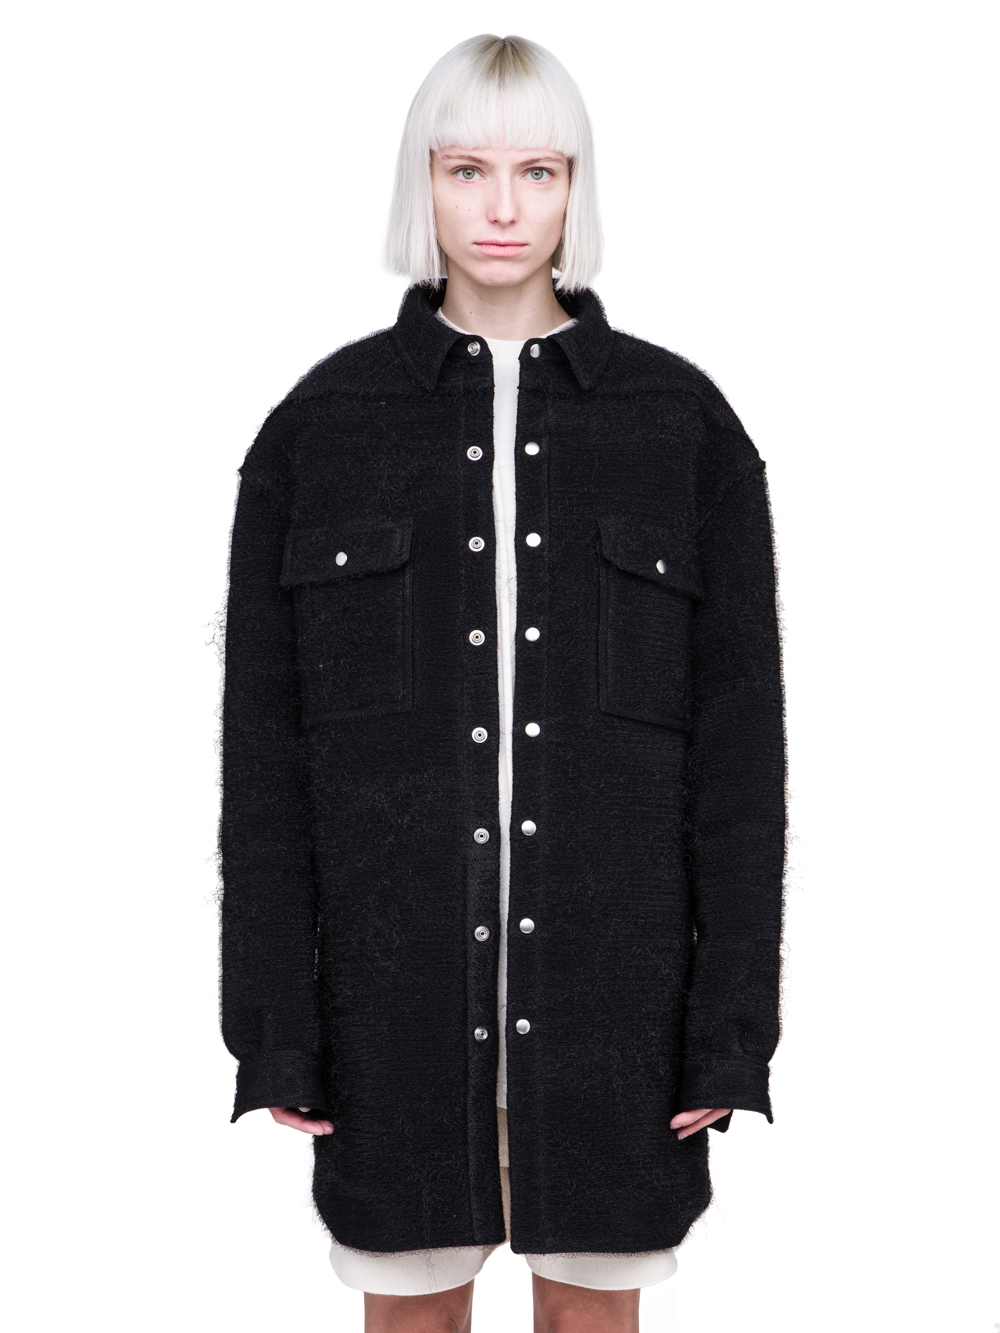 RICK OWENS FW18 SISYPHUS OFF-THE-RUNWAY OVERSIZED OUTERSHIRT IN BLACK PLASTIC SHEARLING